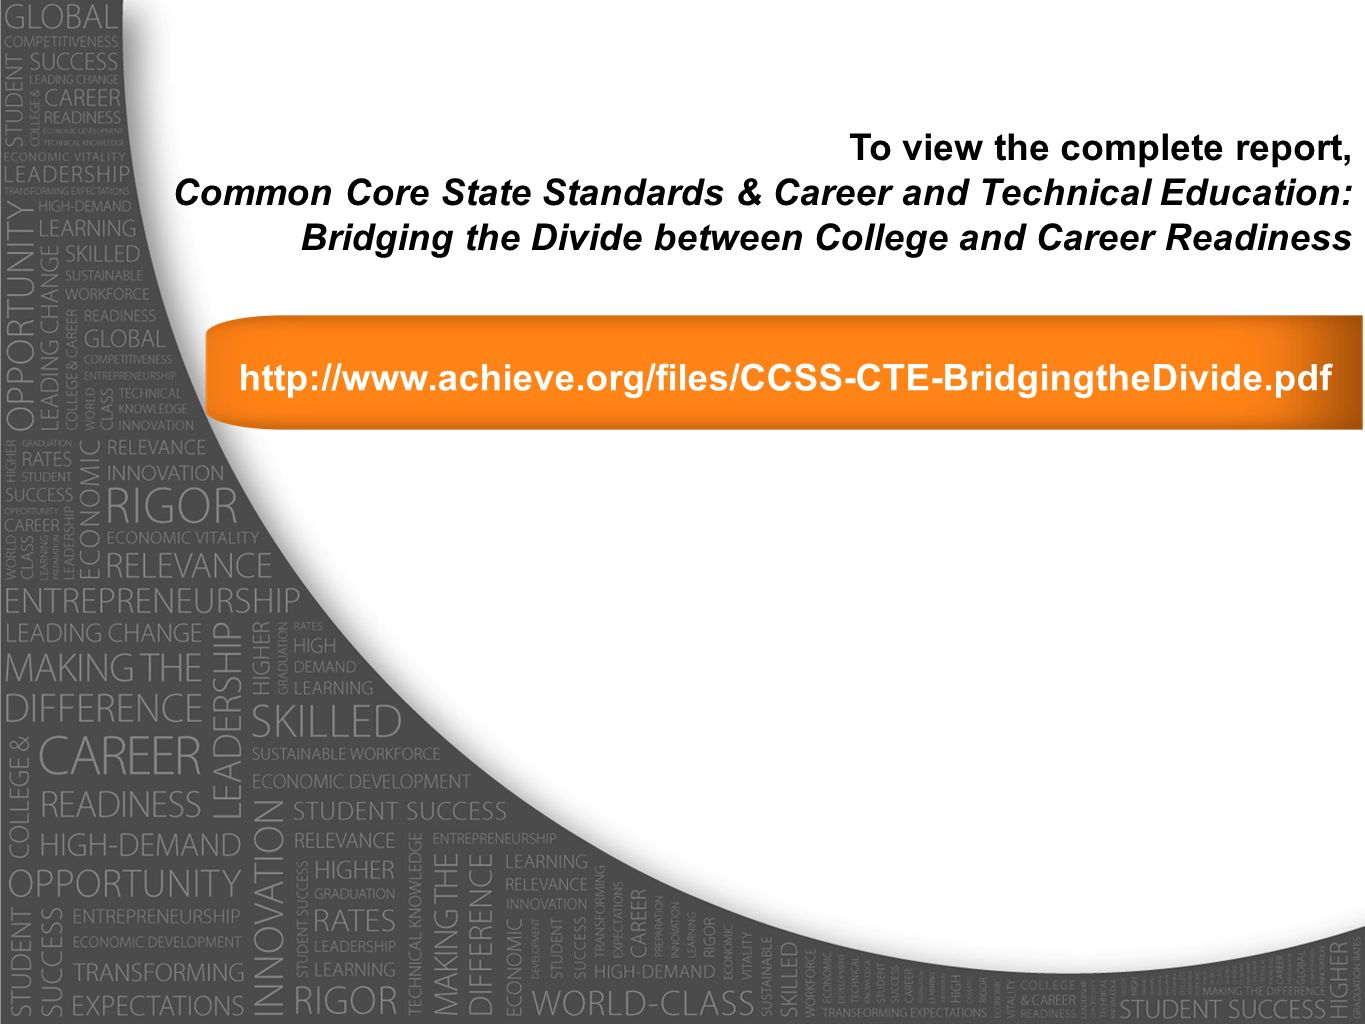 http://www.achieve.org/files/CCSS-CTE-BridgingtheDivide.pdf To view the complete report, Common Core State Standards & Career and Technical Education: Bridging the Divide between College and Career Readiness